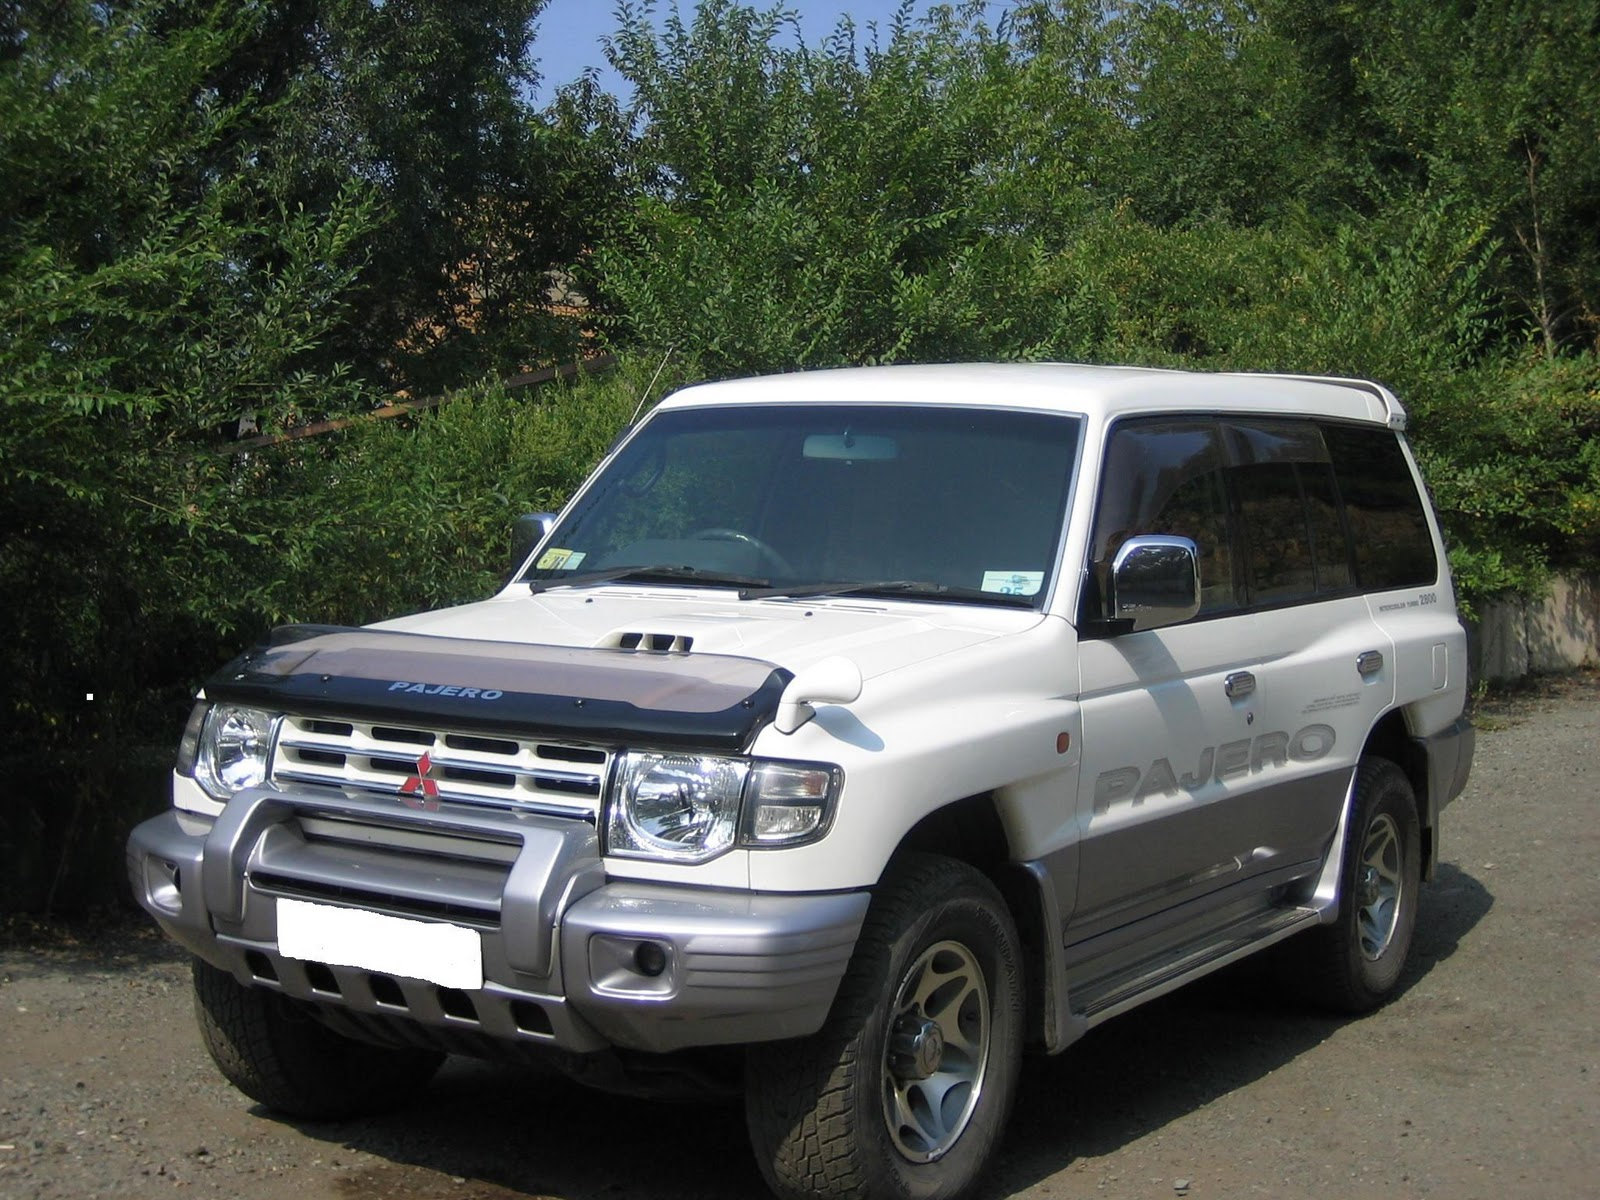 Pajero Indian Luxuary Car Wallpapers, Gallery, Pictures, Images, Photo,  Snaps